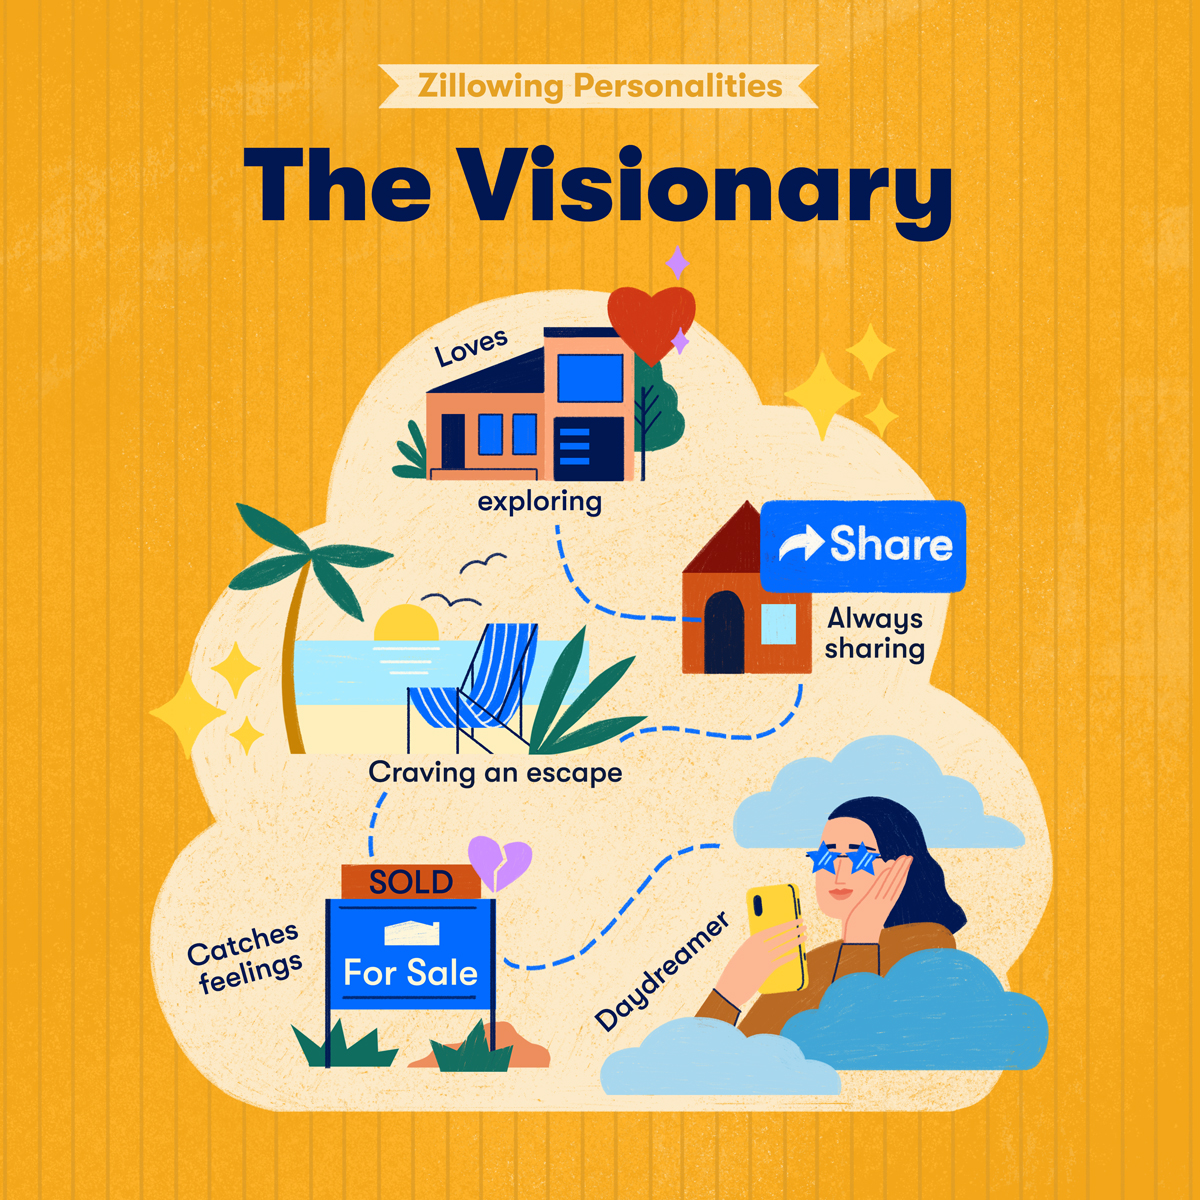 The Visionary: The one who's probably using Zillow to daydream right now